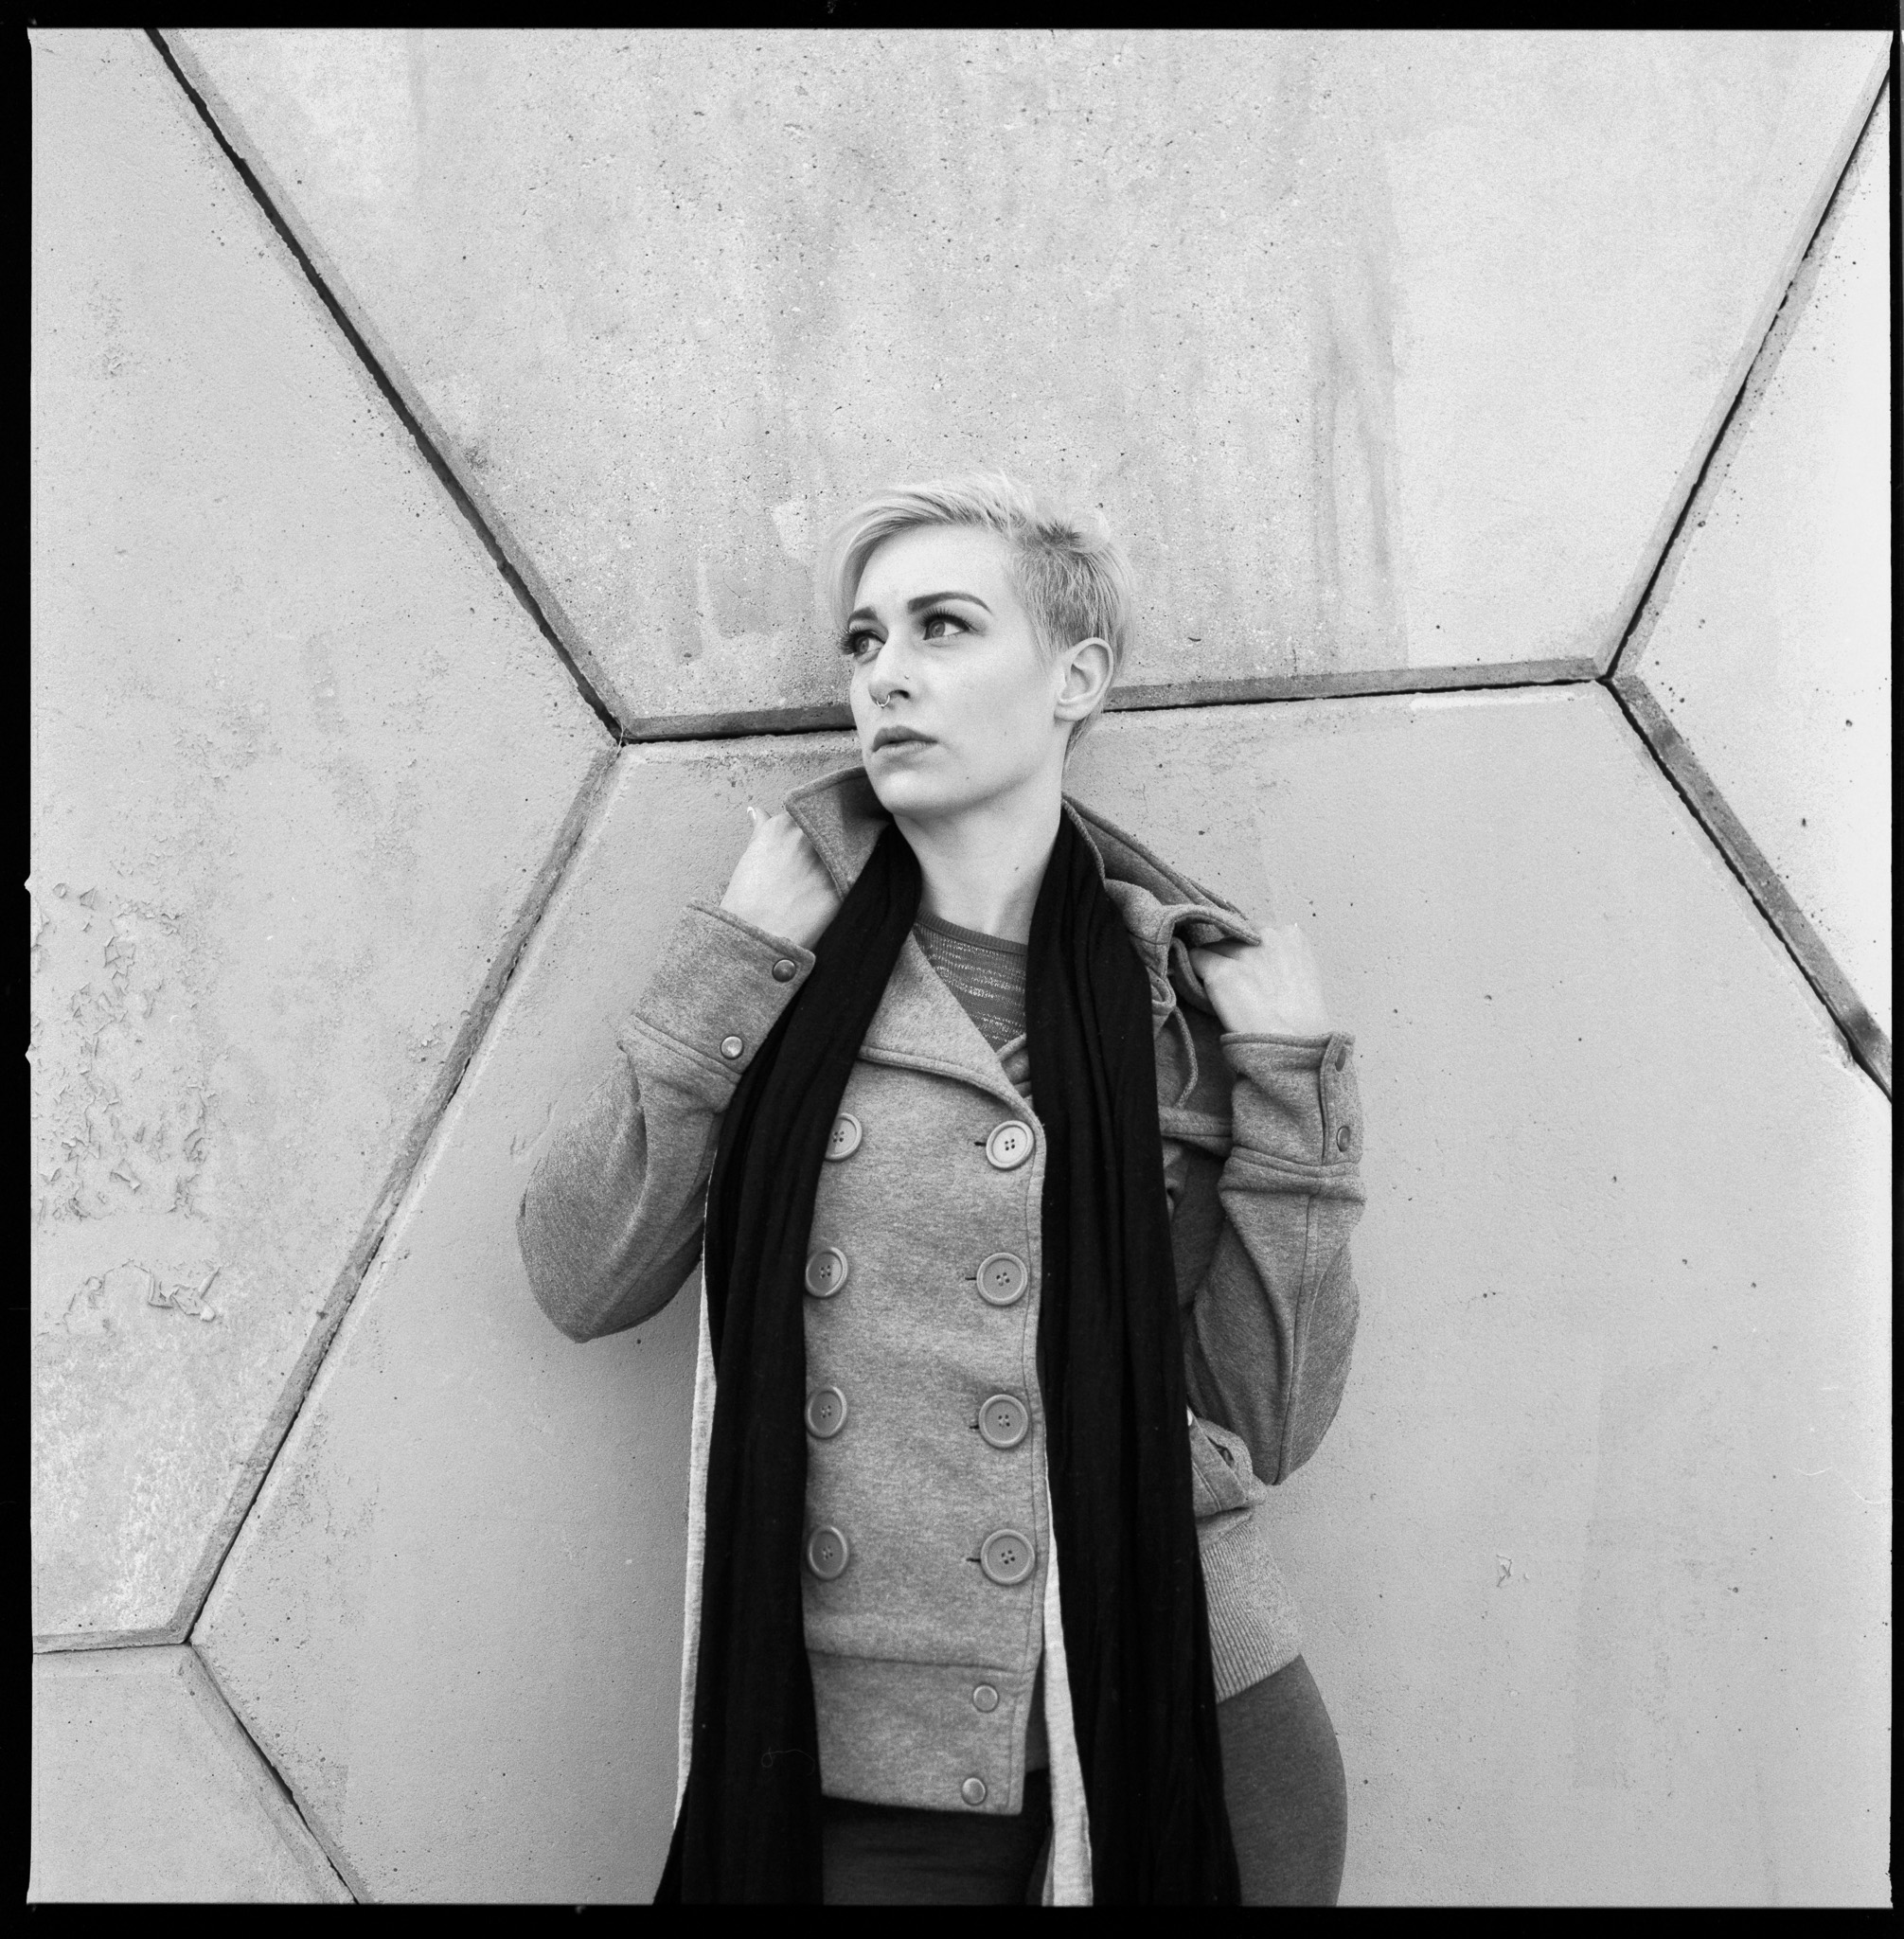 Model: Aoife Svelk  Cameras used: Hasselblad 501CM  Film: Hp5+ 120 medium format